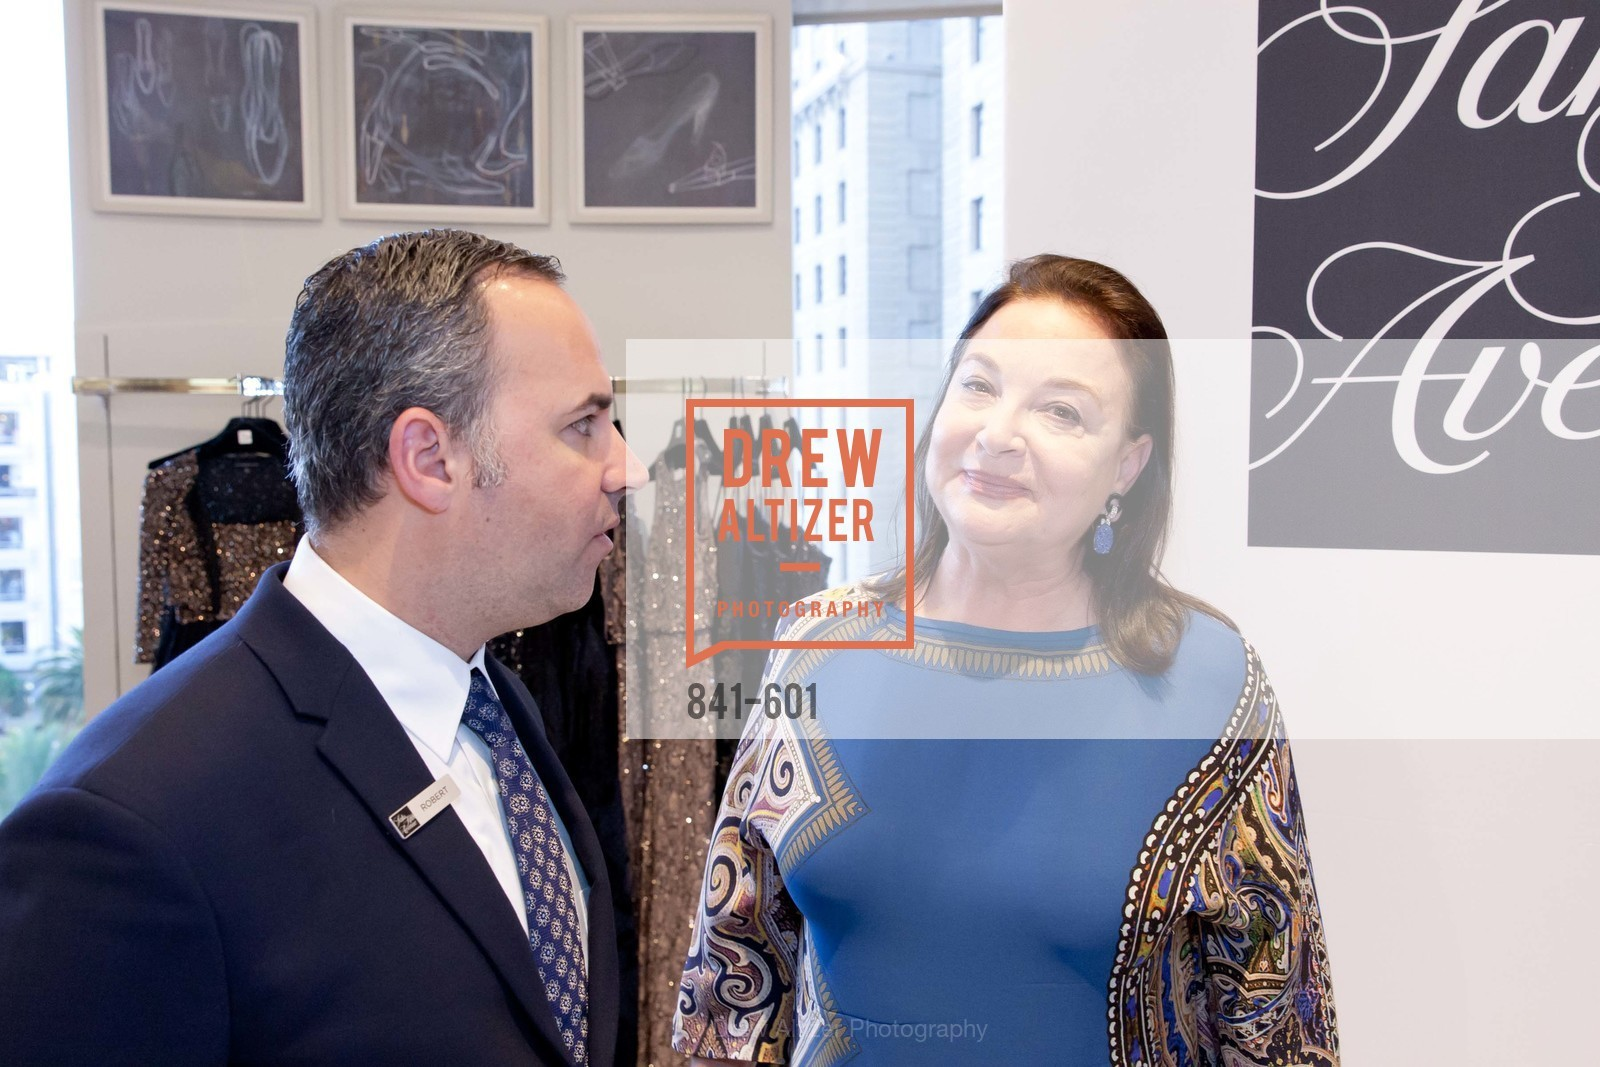 Robert Arnold-Kraft, Elizabeth Merrill, SAKS FIFTH AVENUE and HARPER'S BAZAAR Host the San Francisco Yacht Club, US, October 9th, 2014,Drew Altizer, Drew Altizer Photography, full-service agency, private events, San Francisco photographer, photographer california